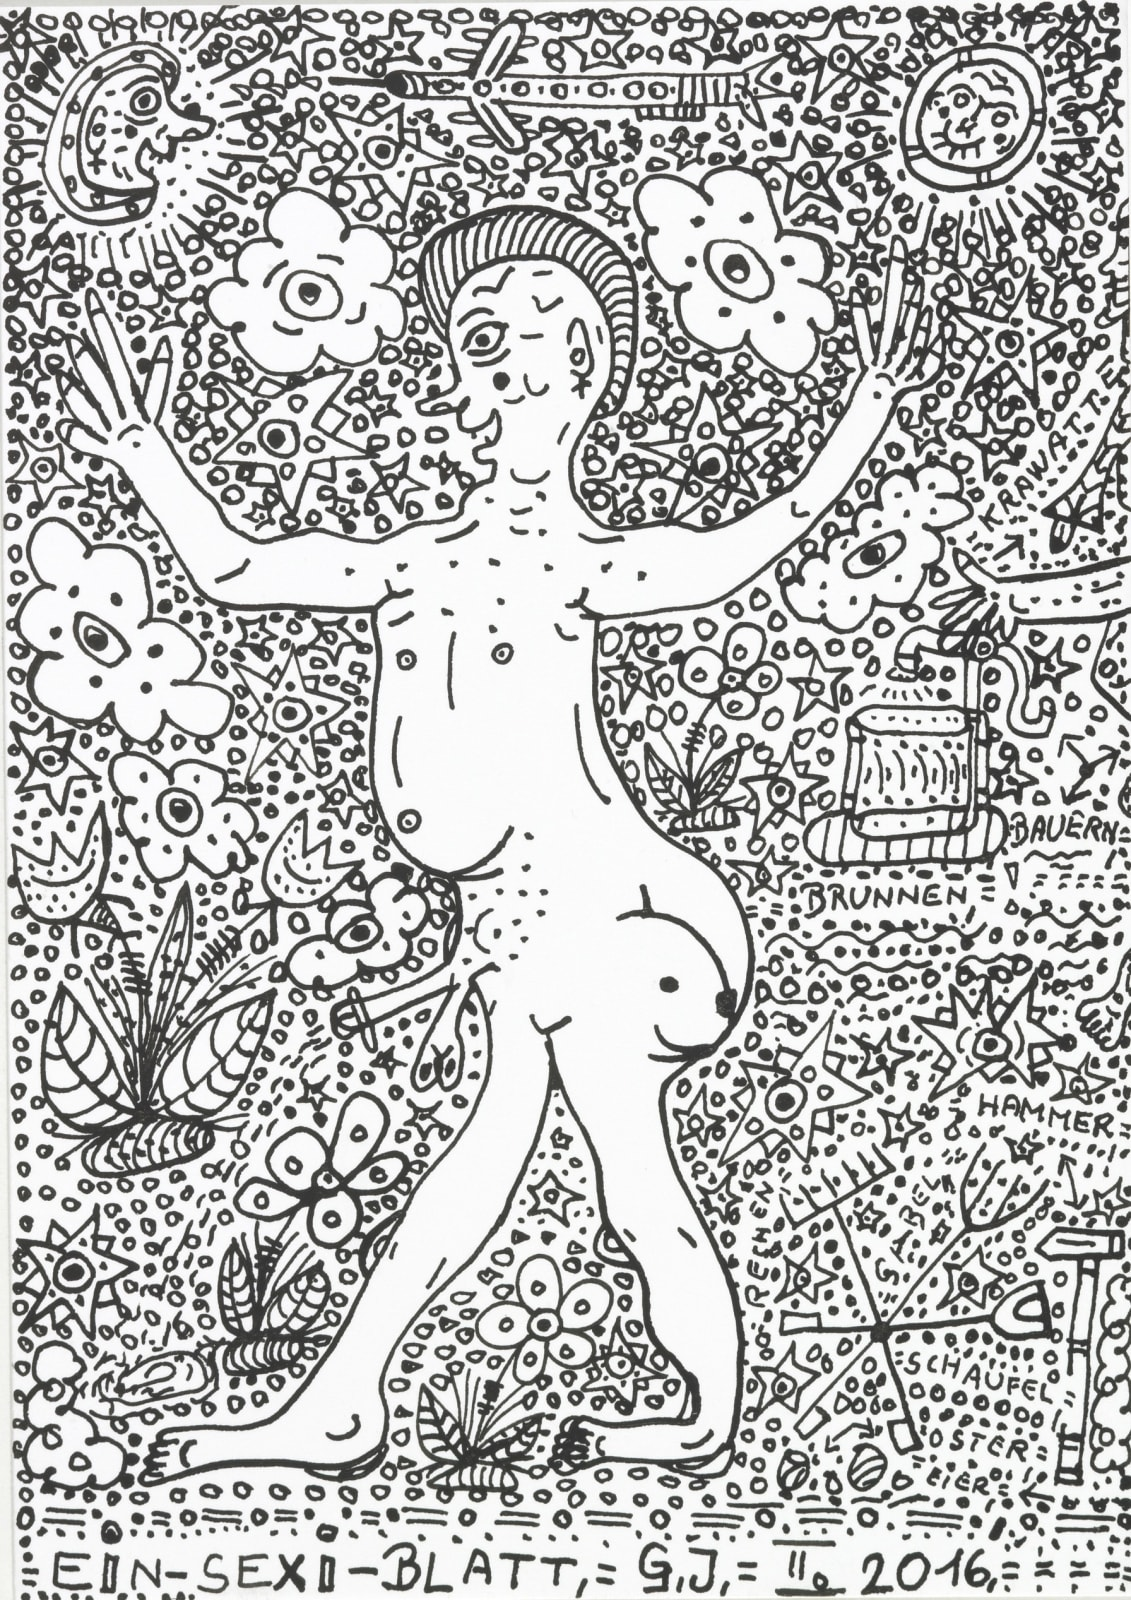 A Sexi-Paper, 2016 India Ink on white wove paper 6 x 4.25 in. (15.24 x 10.8 cm.) (JGG 6) $3,000